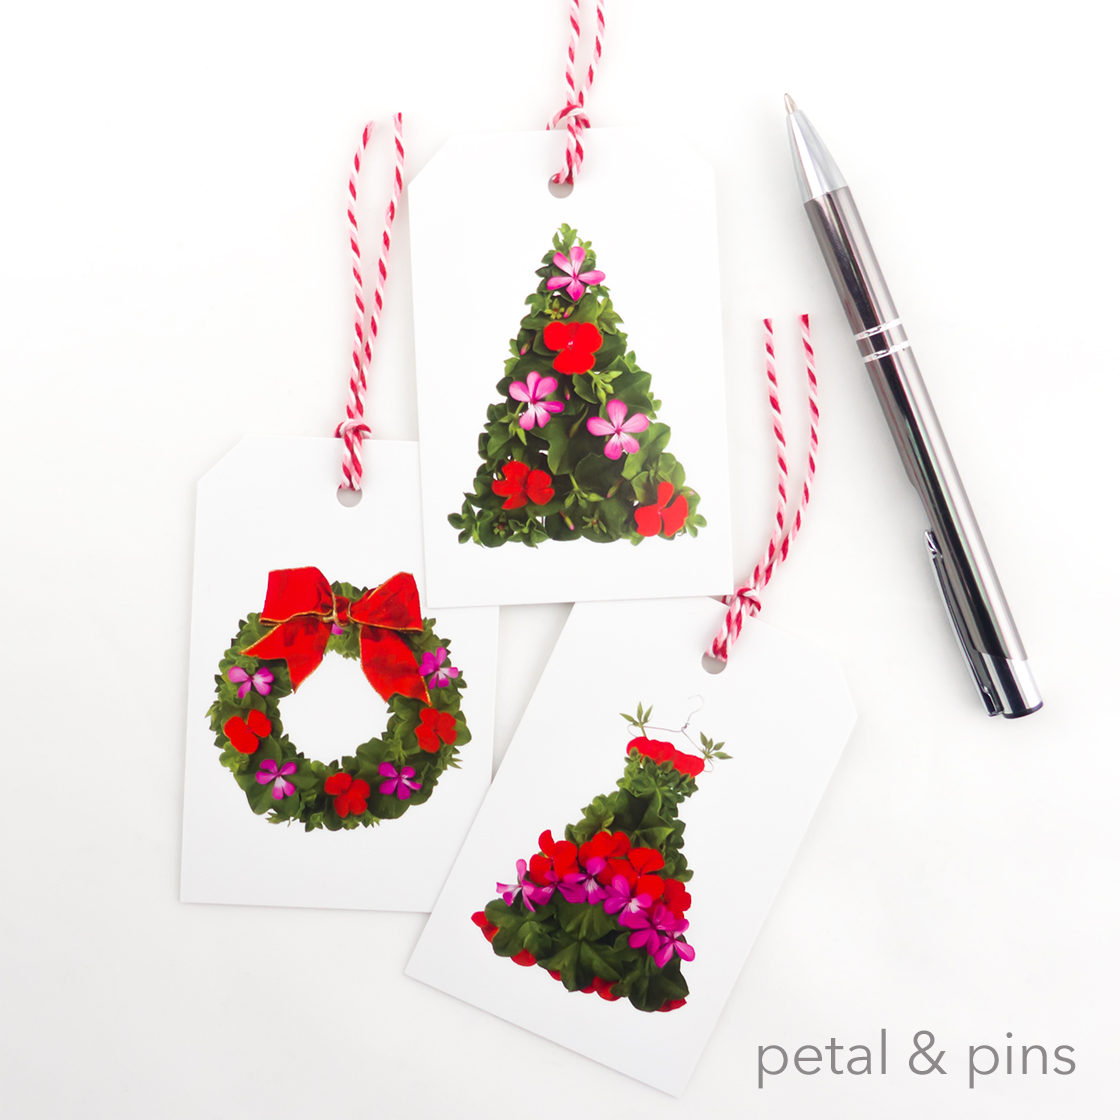 trio of petal & pins xmas geranium gift tags